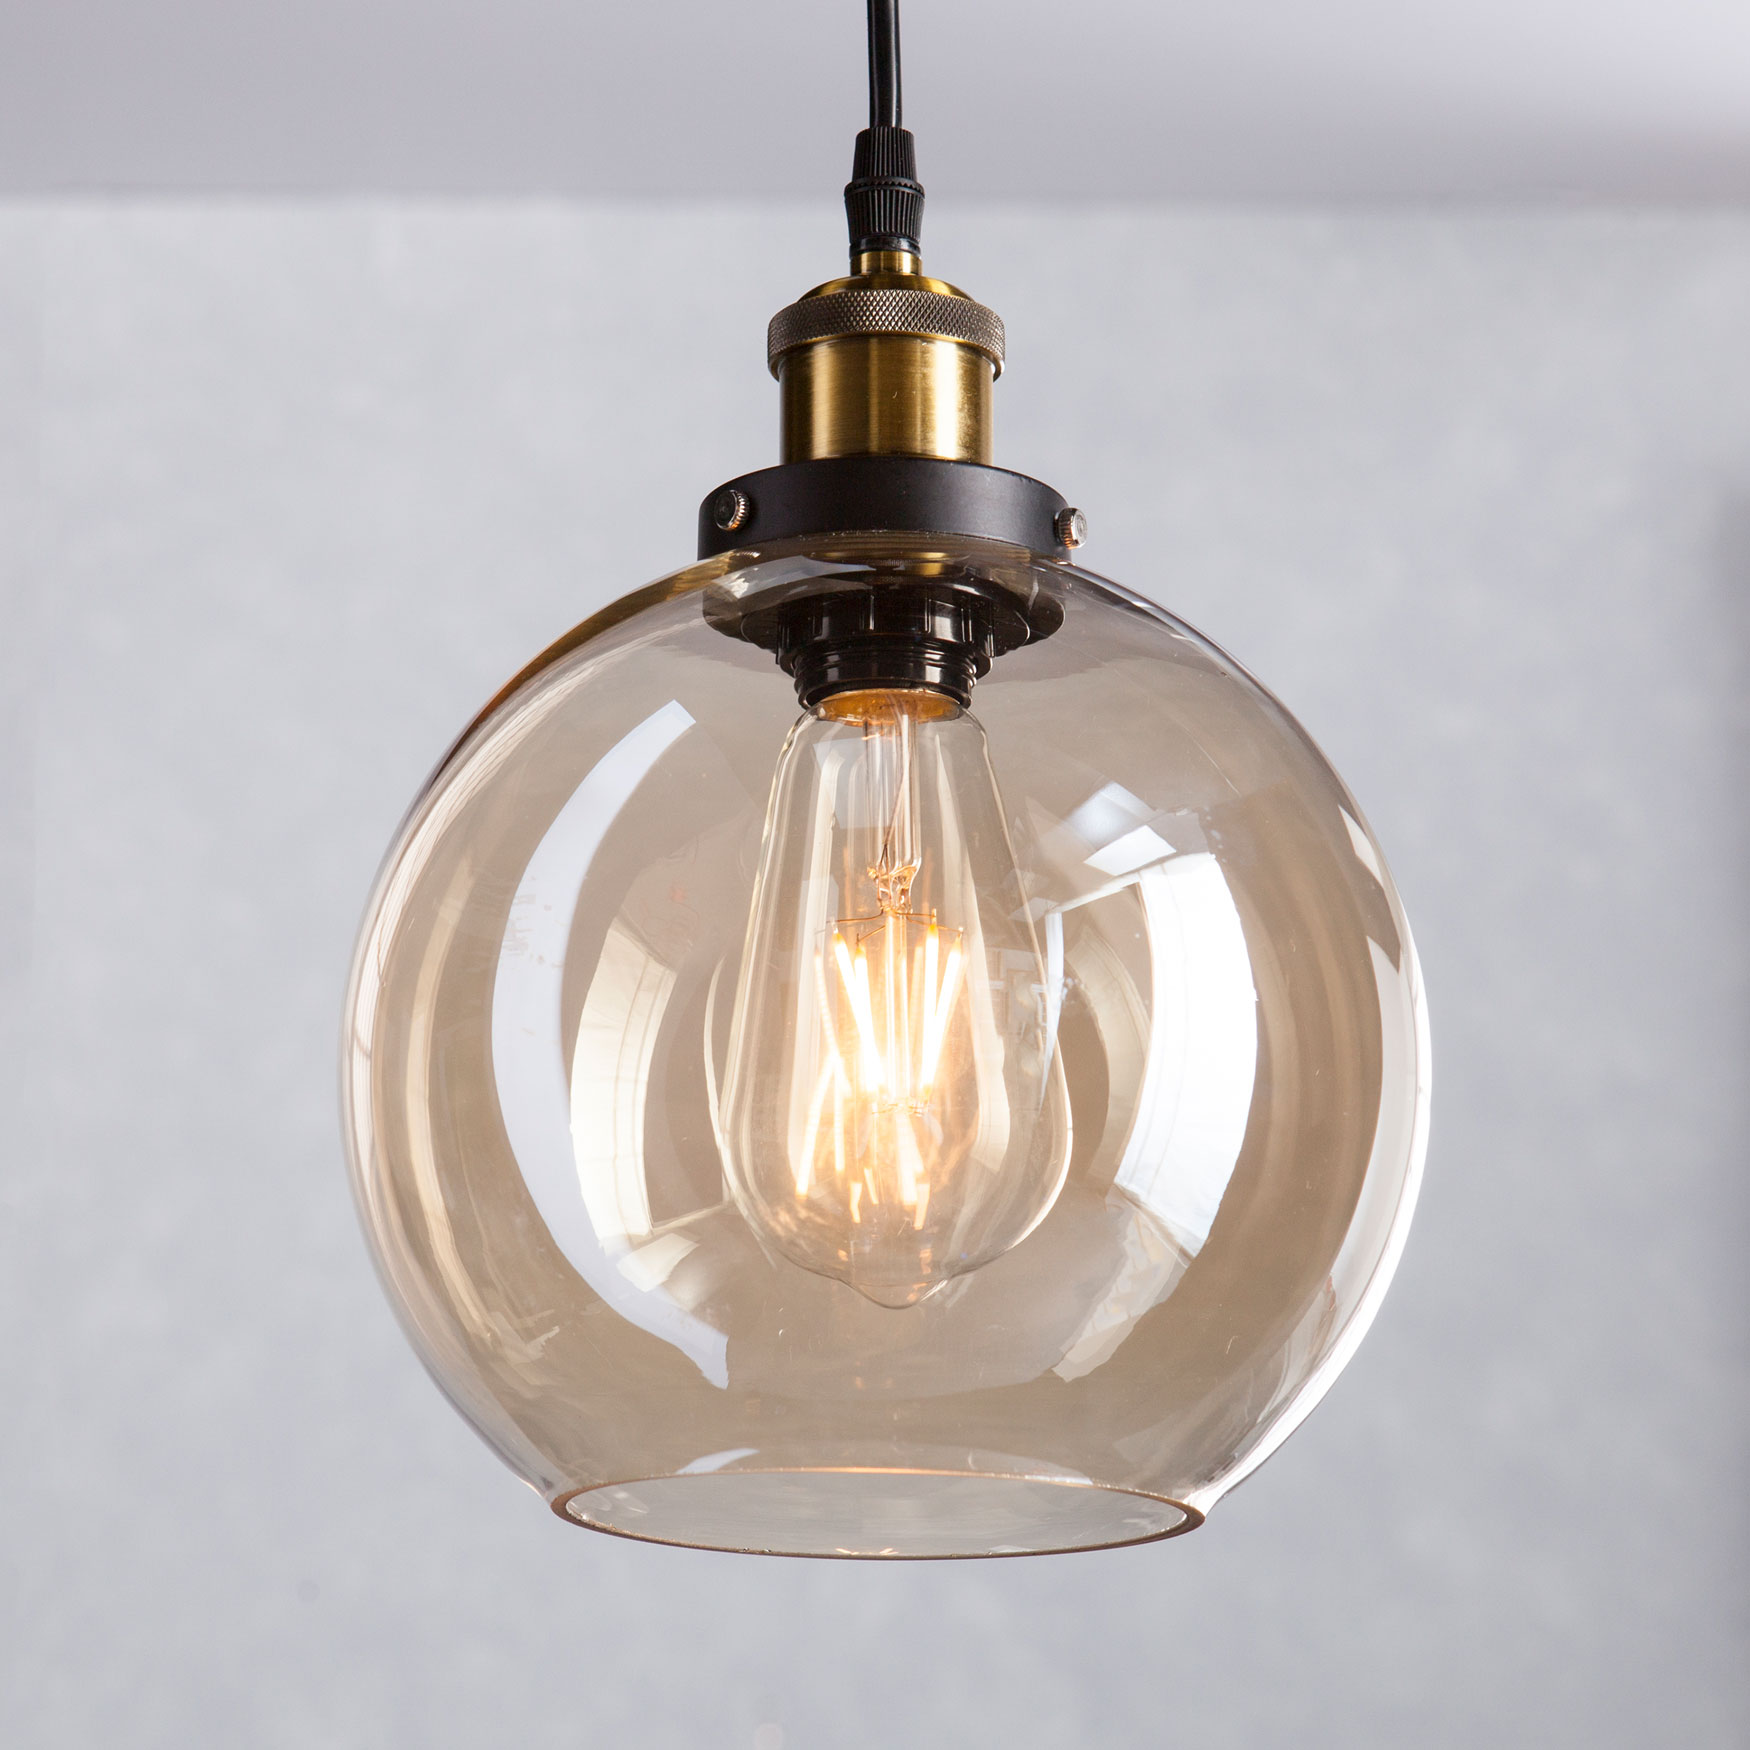 Mini Round Globe-Shaped Pendant Lamp, AMBER BLACK